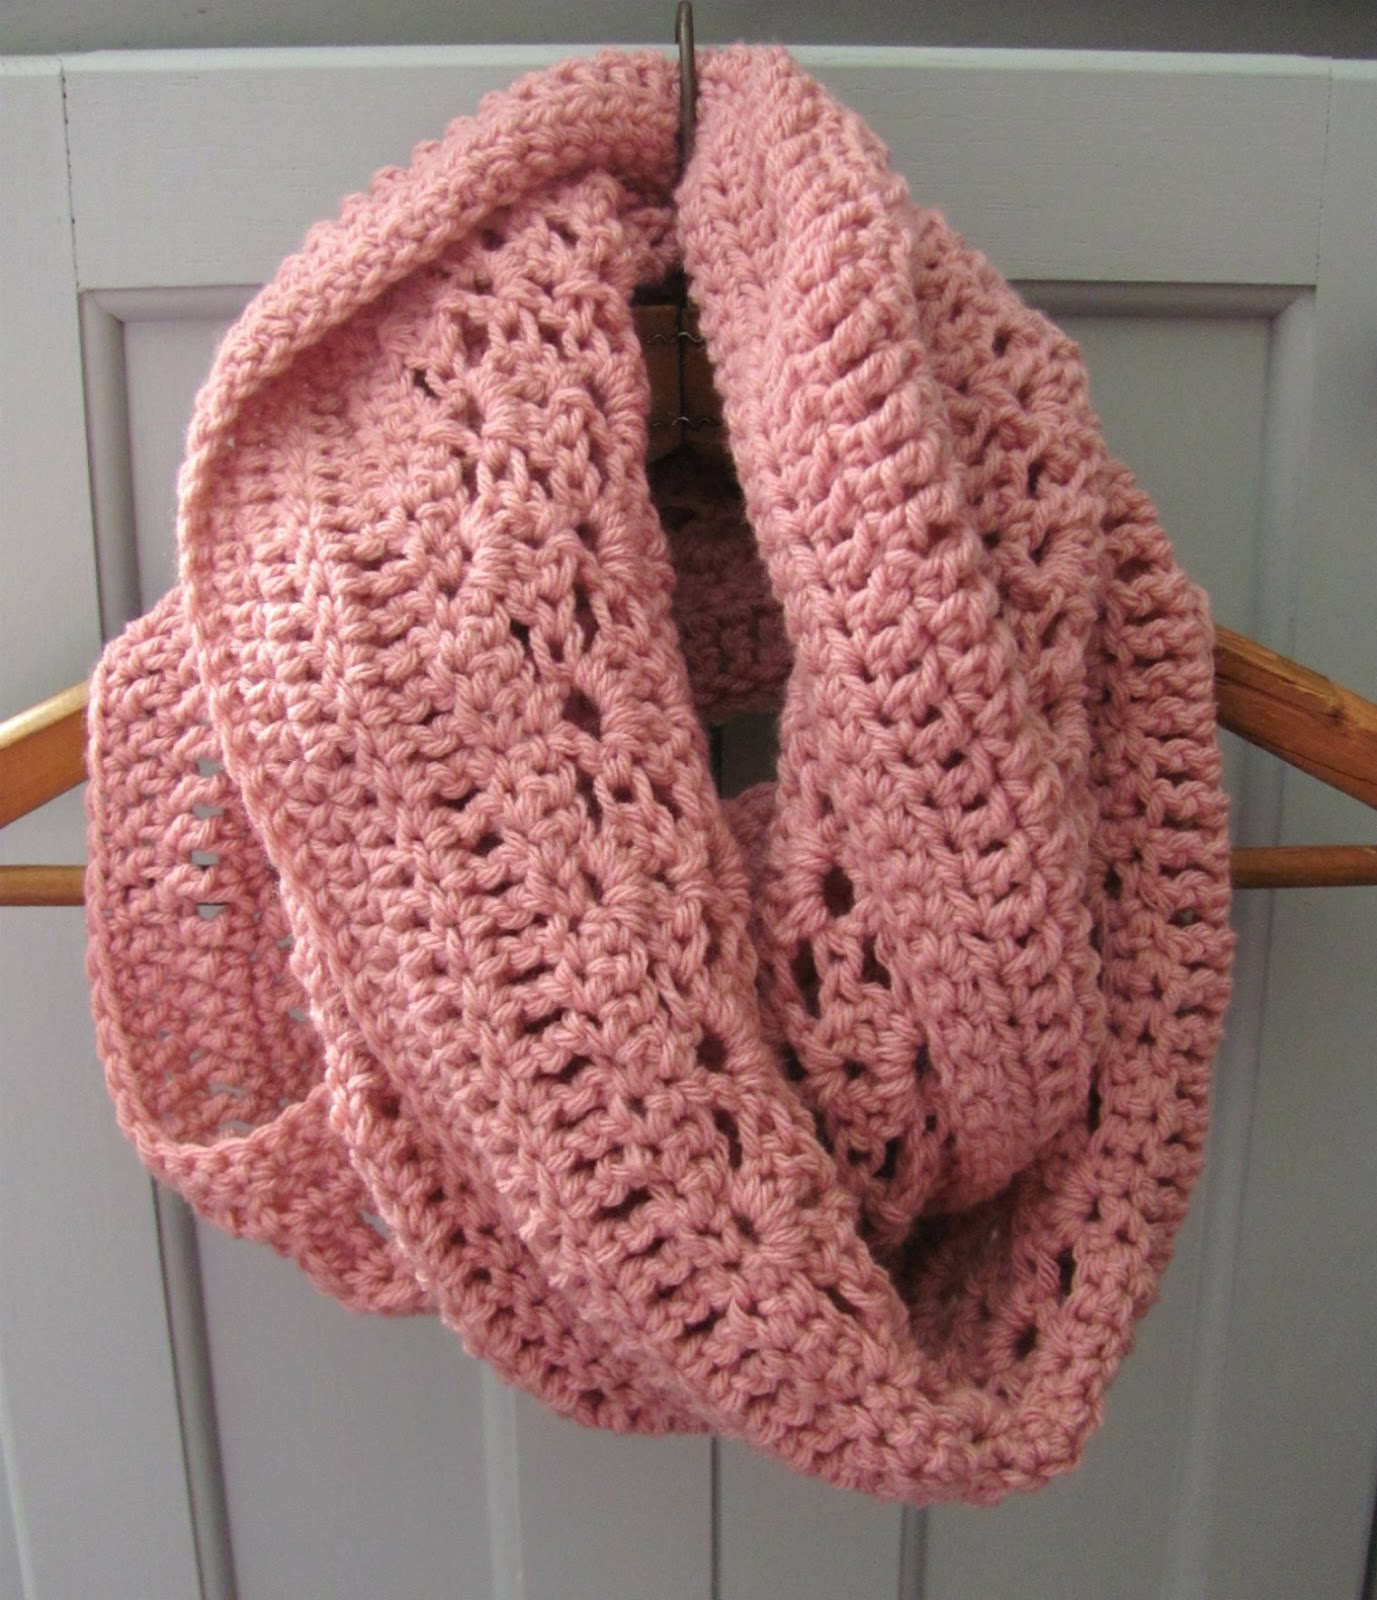 30+ fabulous and free crochet scarf patterns - dwbpdps